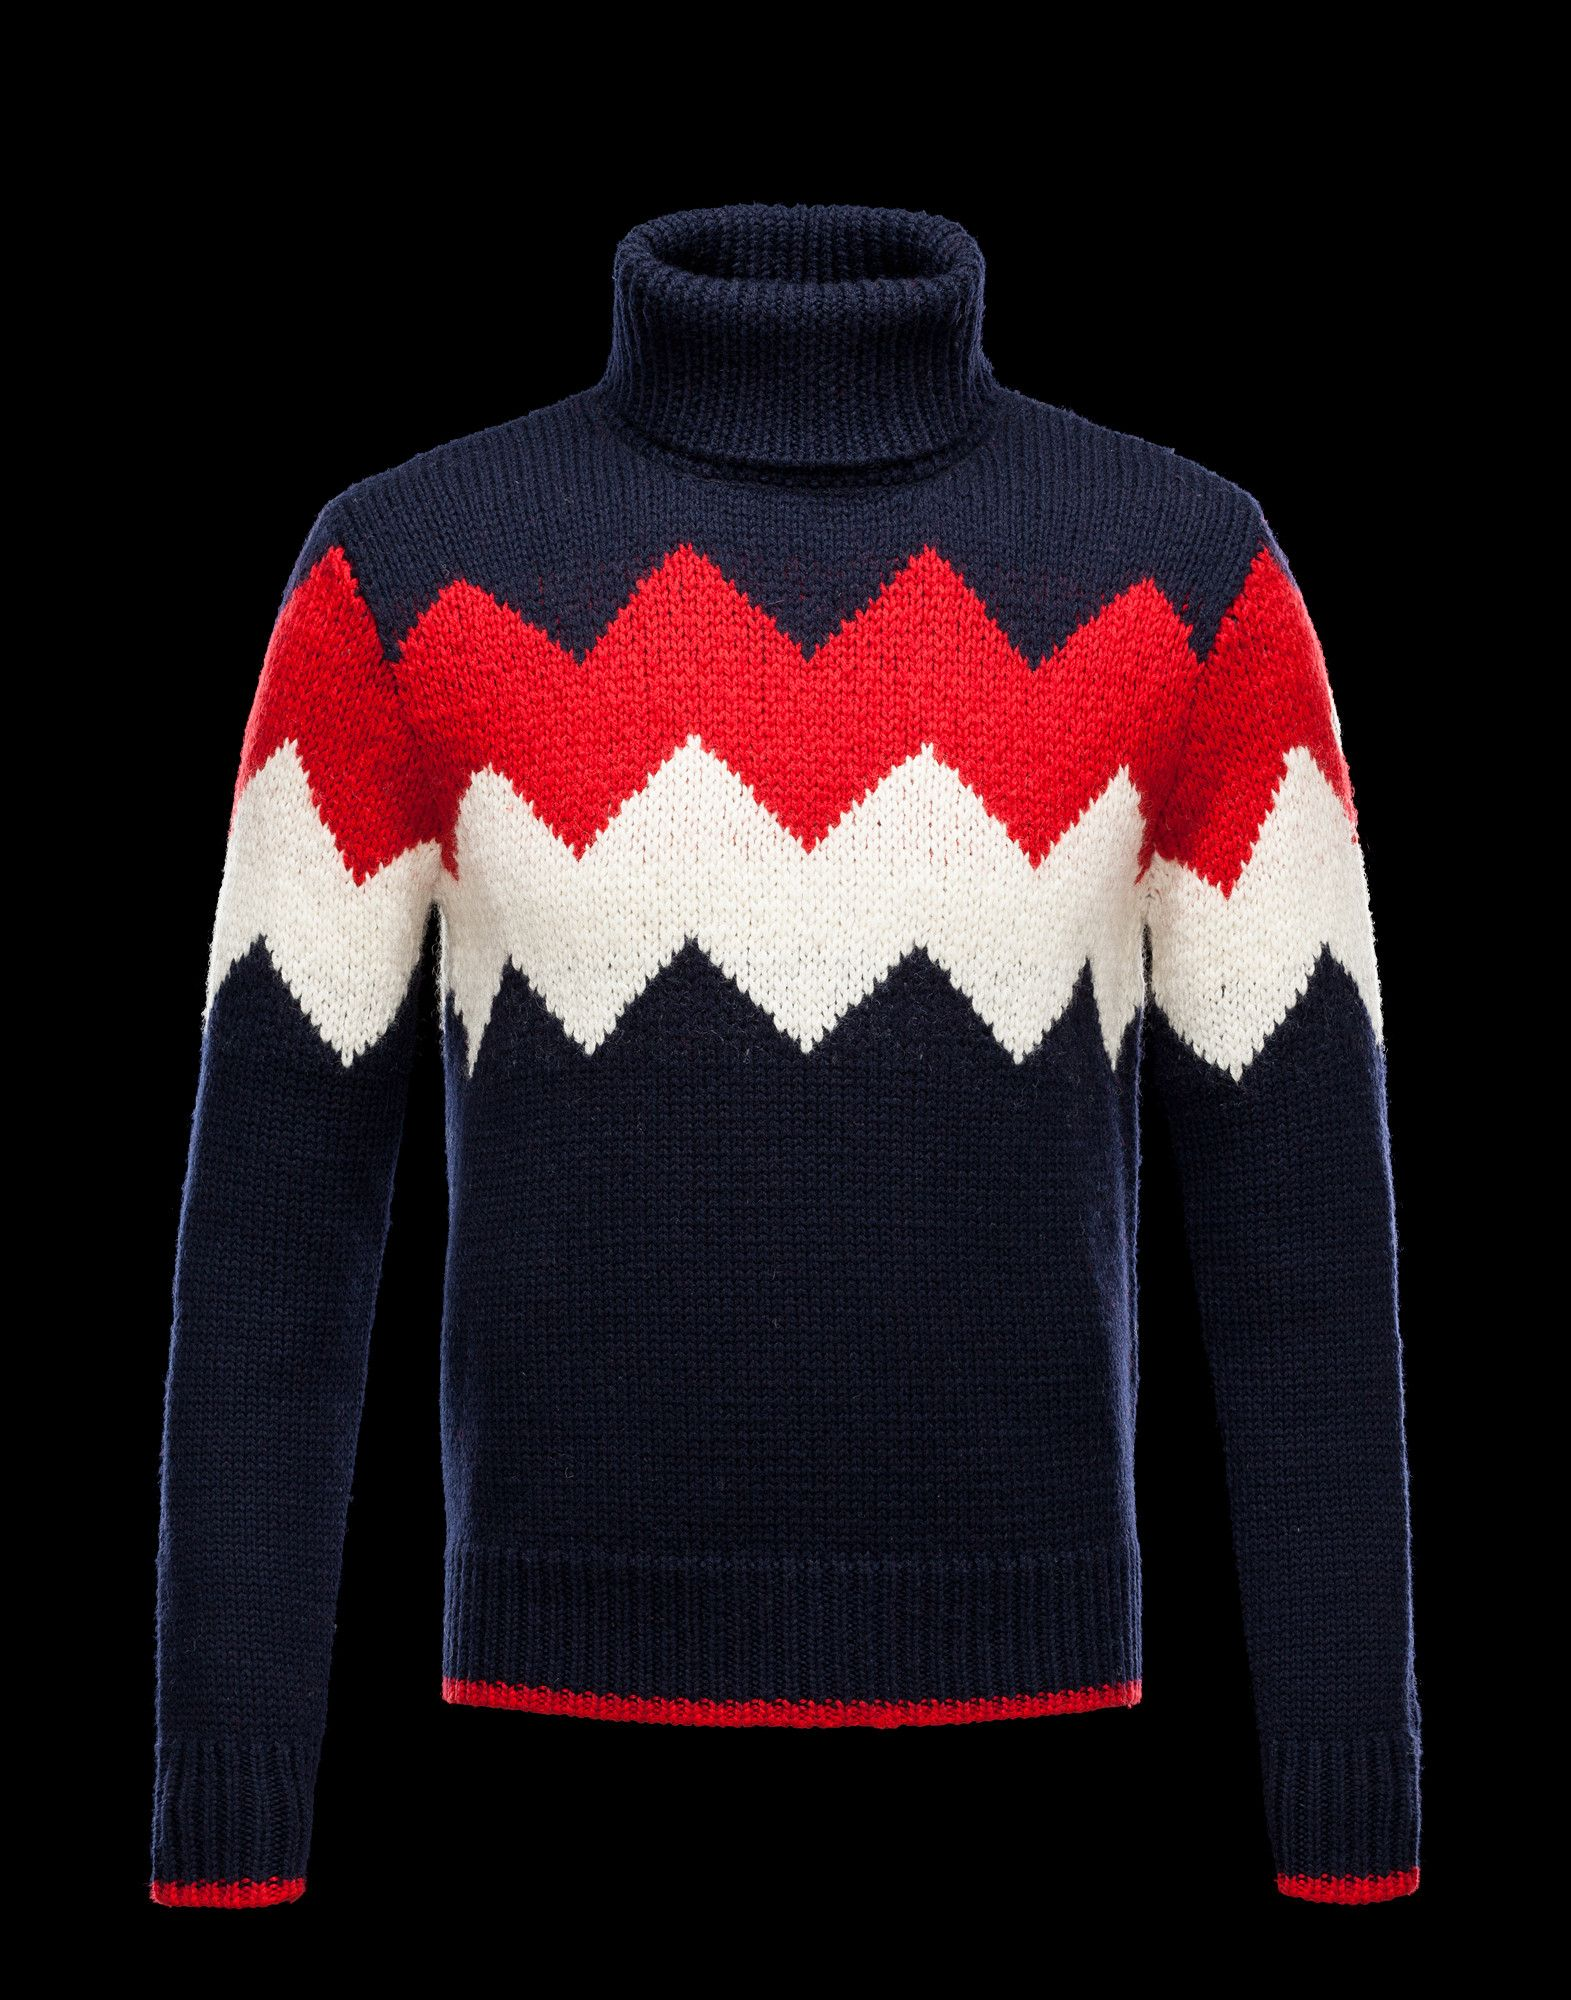 d0f505b2b MONCLER Men - Fall Winter 12 - KNITWEAR - High neck sweater ...